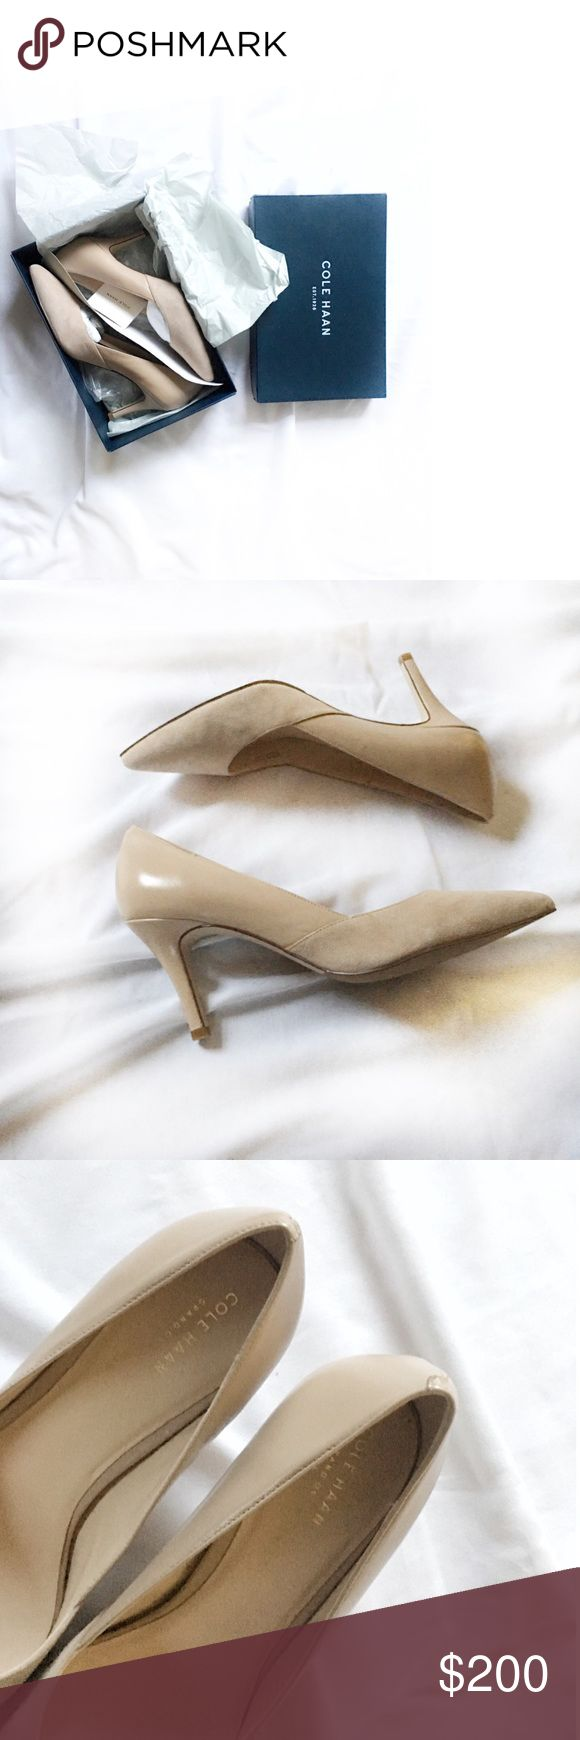 """Rose Nude COLE HAAN Maple Sugar Kyle Pump II Always Authentic🌸 Cole Haan 3"""" heel Kyle pump in nude """"maple sugar"""", size 10B. Brand new! Beautiful and comfortable edition to your closet essentials! Tonal suede and smooth leather. *I personally style all pics* NO TRADES EVER! Bundle & save even more✅ Cole Haan Shoes Heels"""